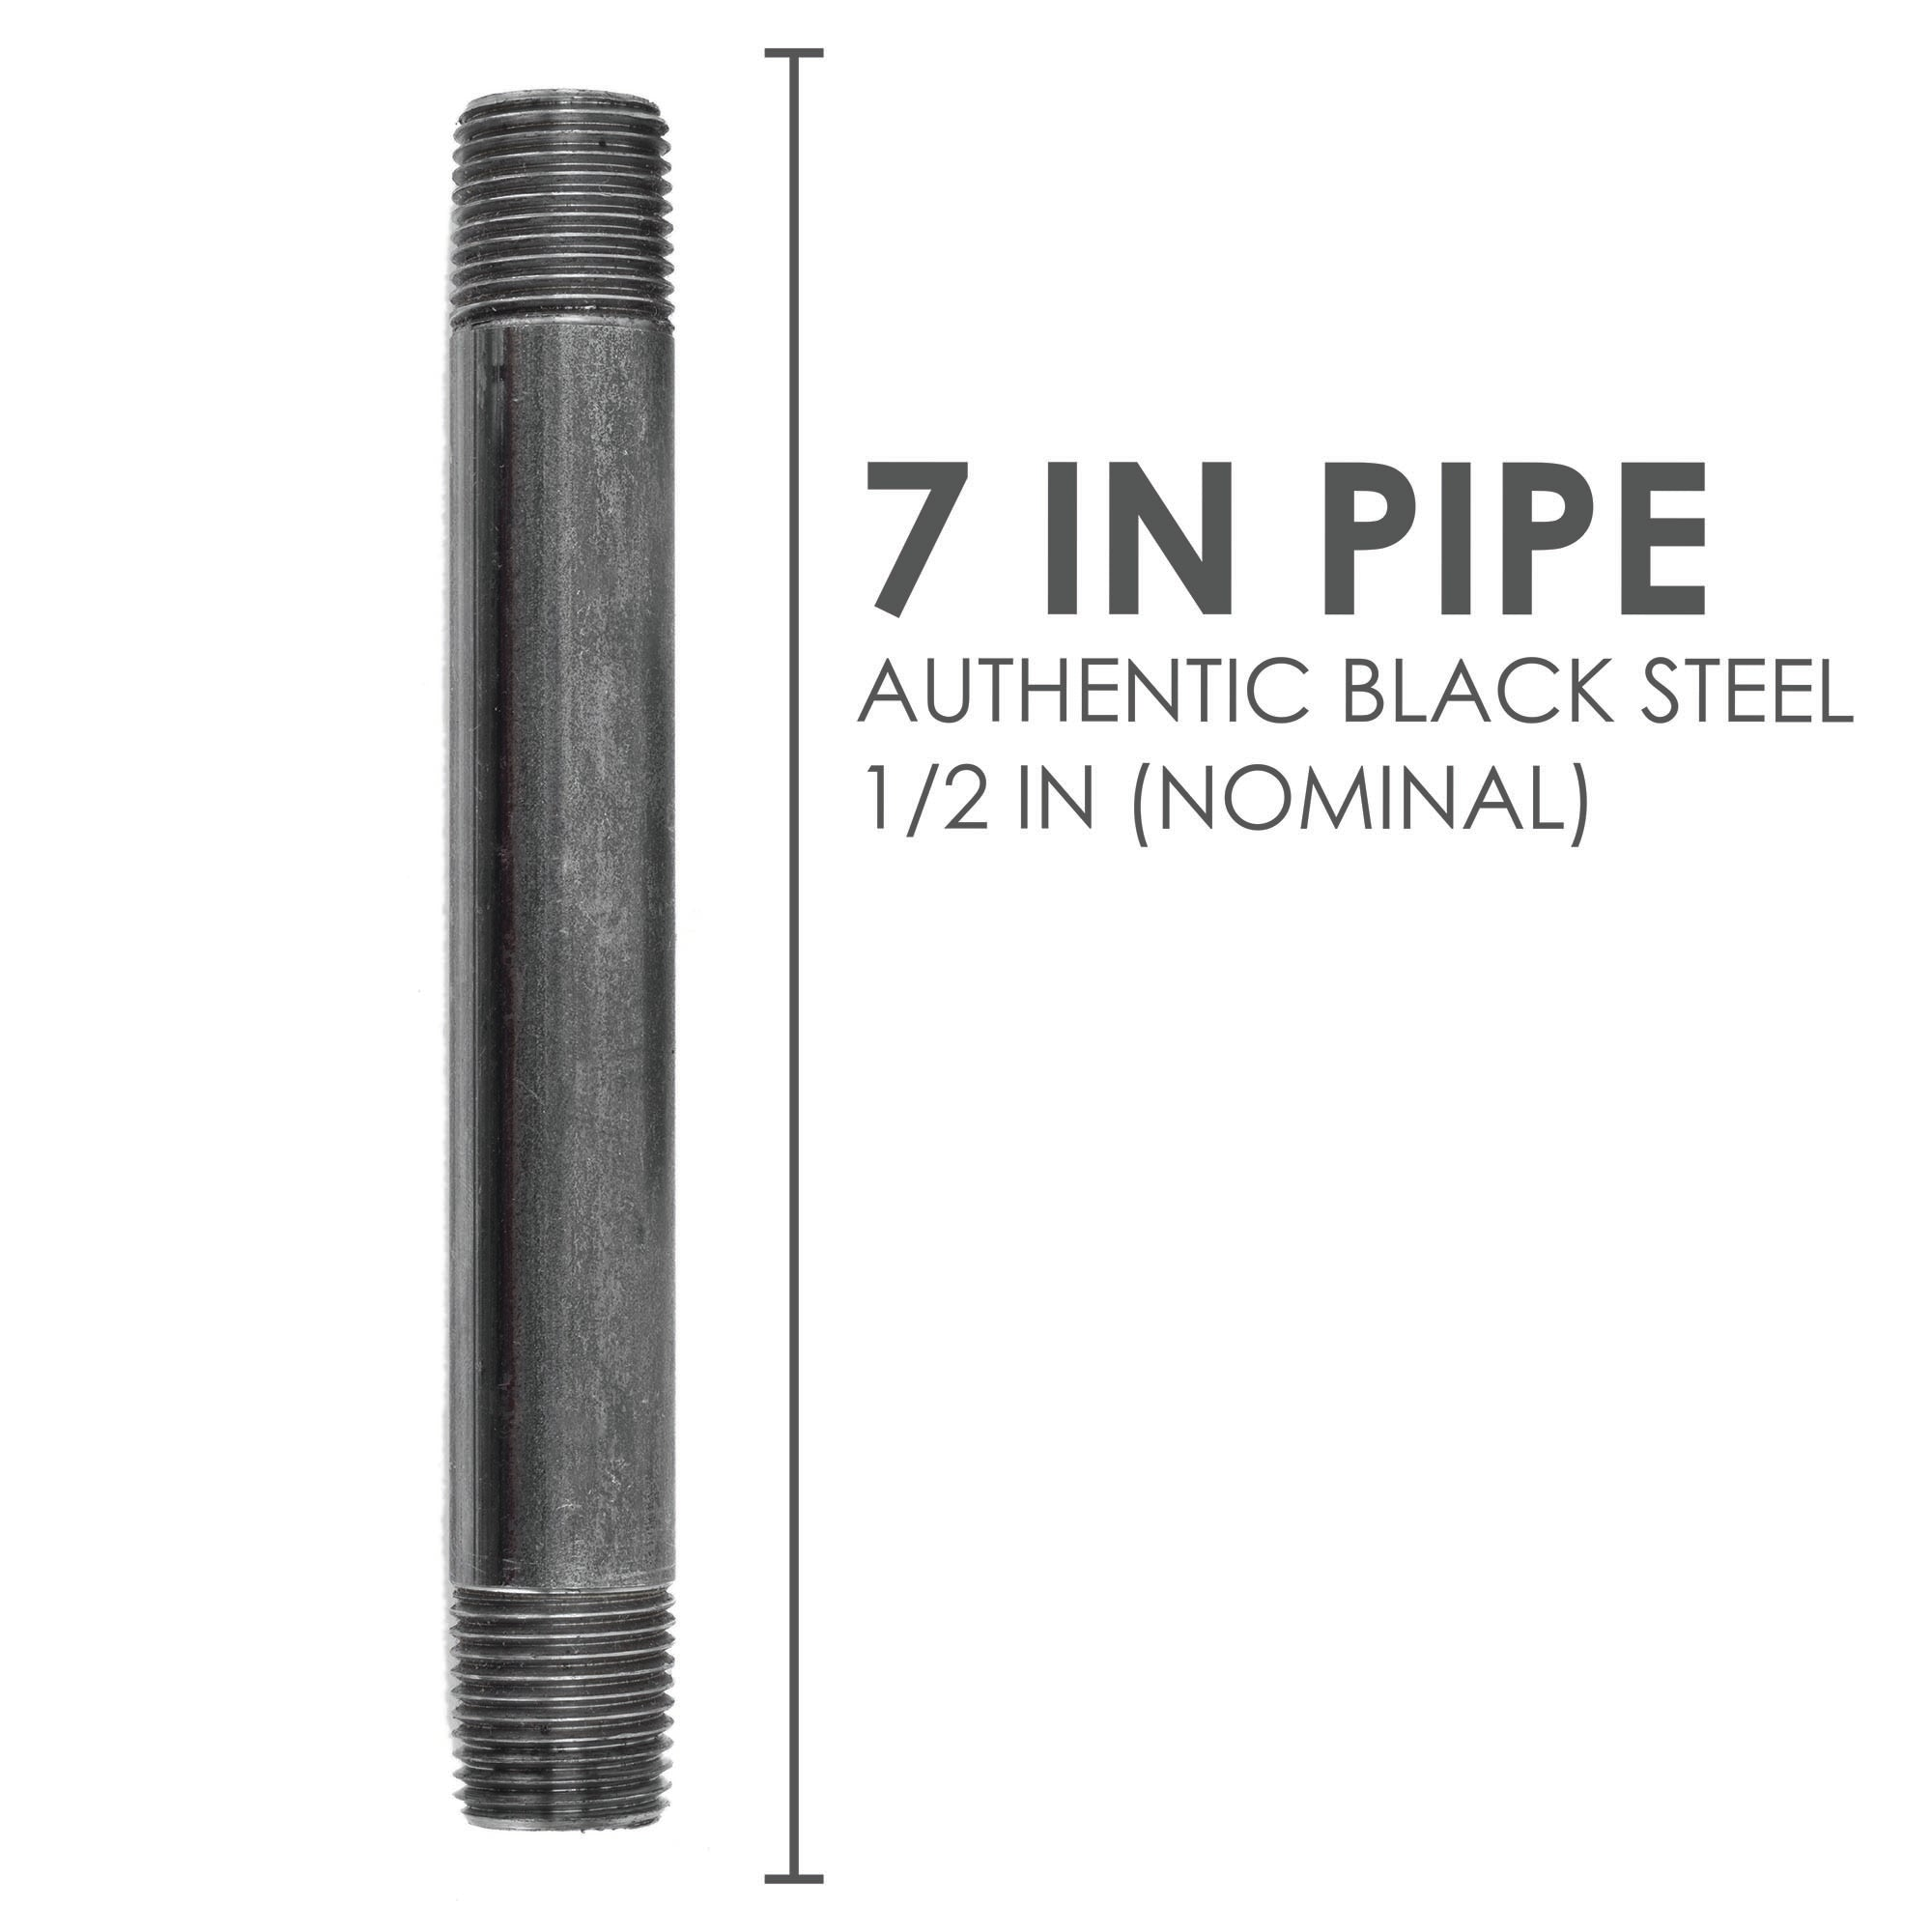 1/2  In X 7 In Black Pipe - Pipe Decor